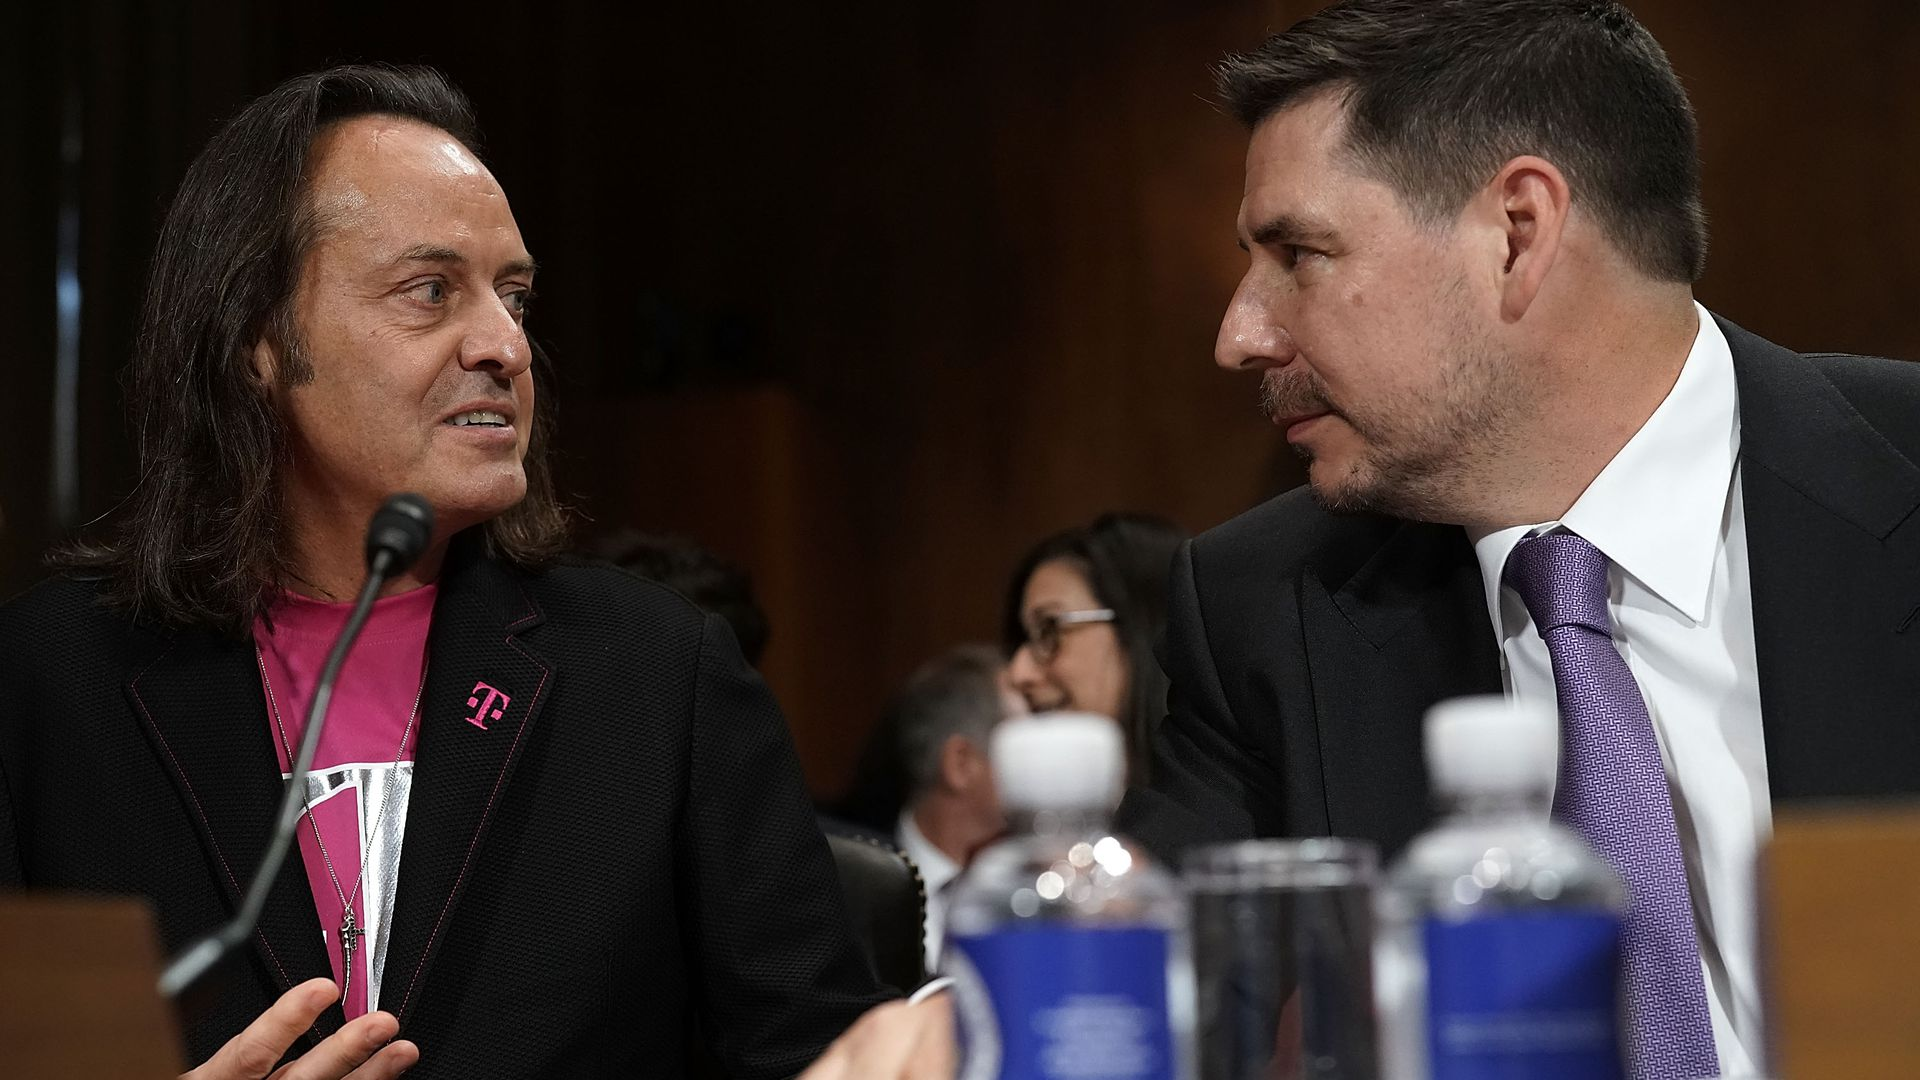 The chief executives of T-Mobile and Sprint